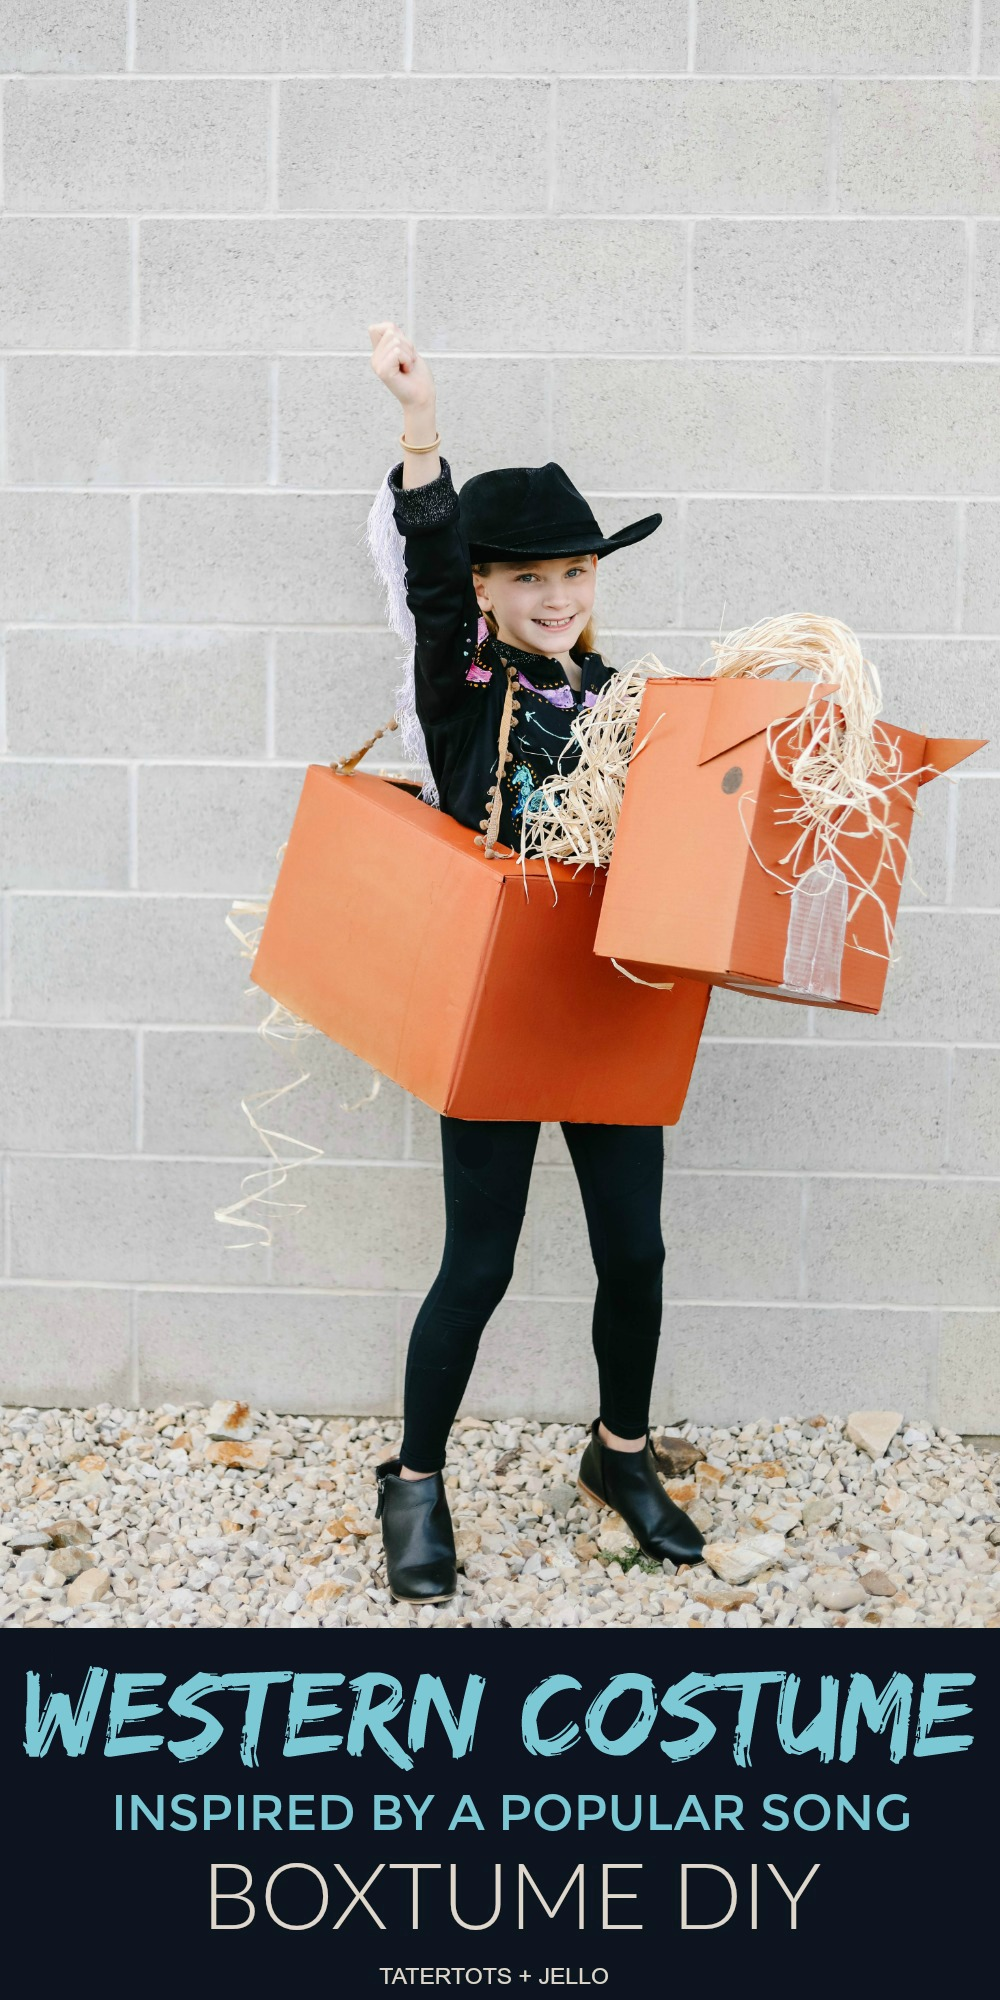 """""""Old Town Road"""" Western Boxtume Costume DIY. Turn a catchy western song into an easy Halloween costume with Amazon Prime smile boxes and some creativity!"""